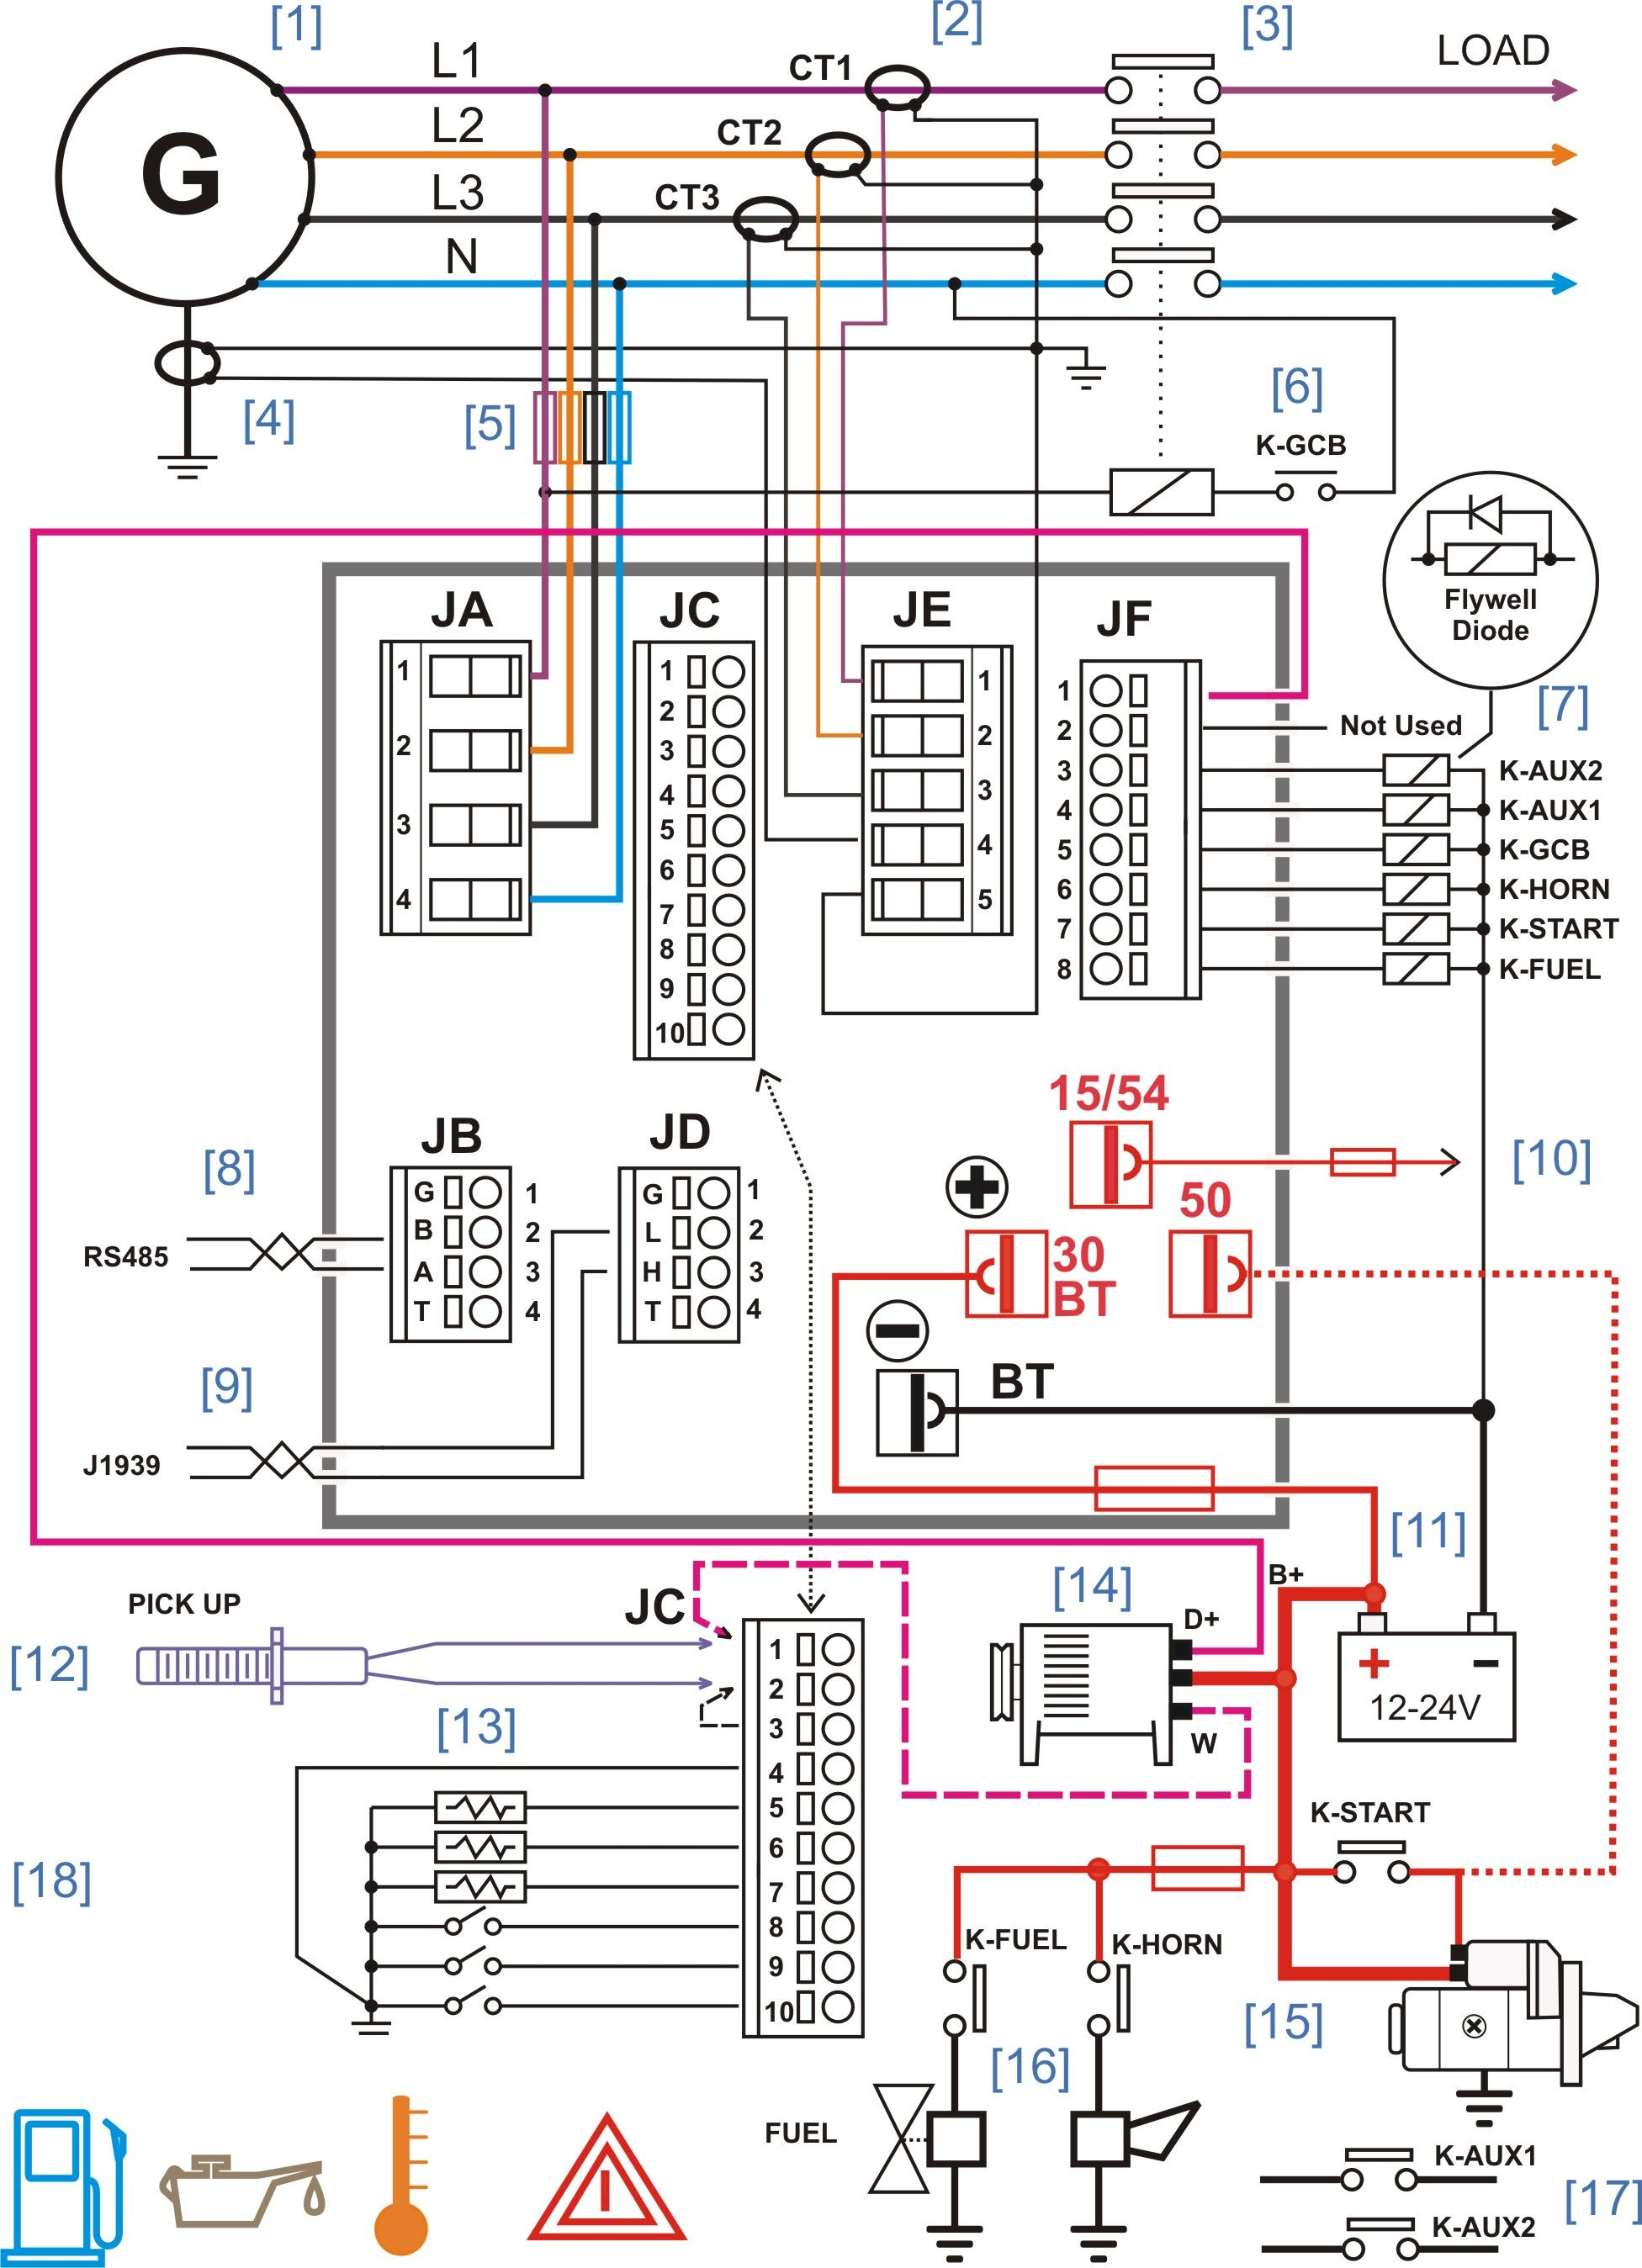 diesel generator control panel wiring diagram diesel generators rh pinterest com simple generator wiring diagram Portable Generator Wiring Diagram